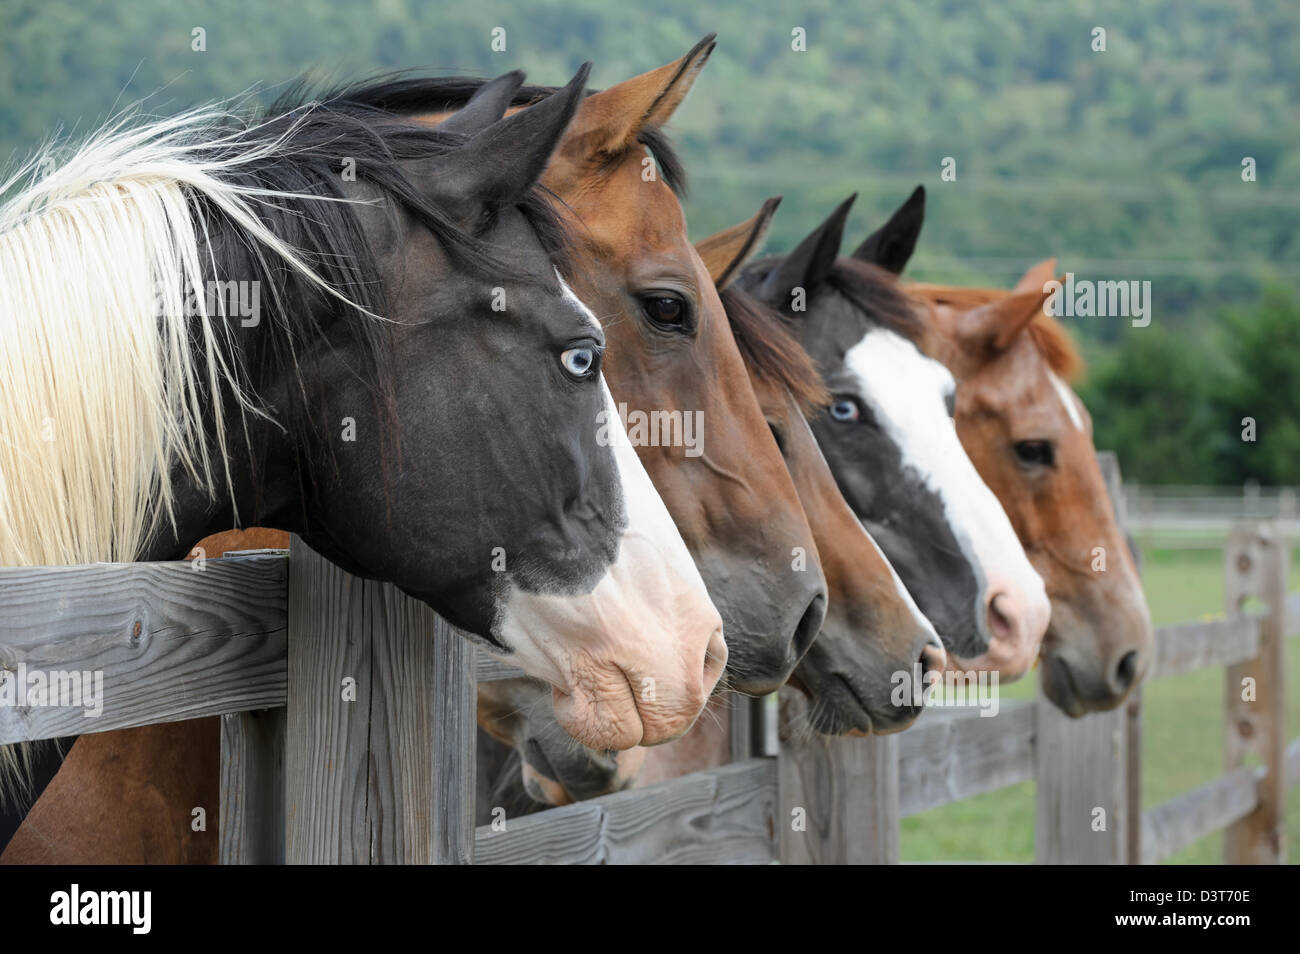 Horses lined up looking over fence as a group toward camera right, side view, one animal with piercing blue eyes. - Stock Image